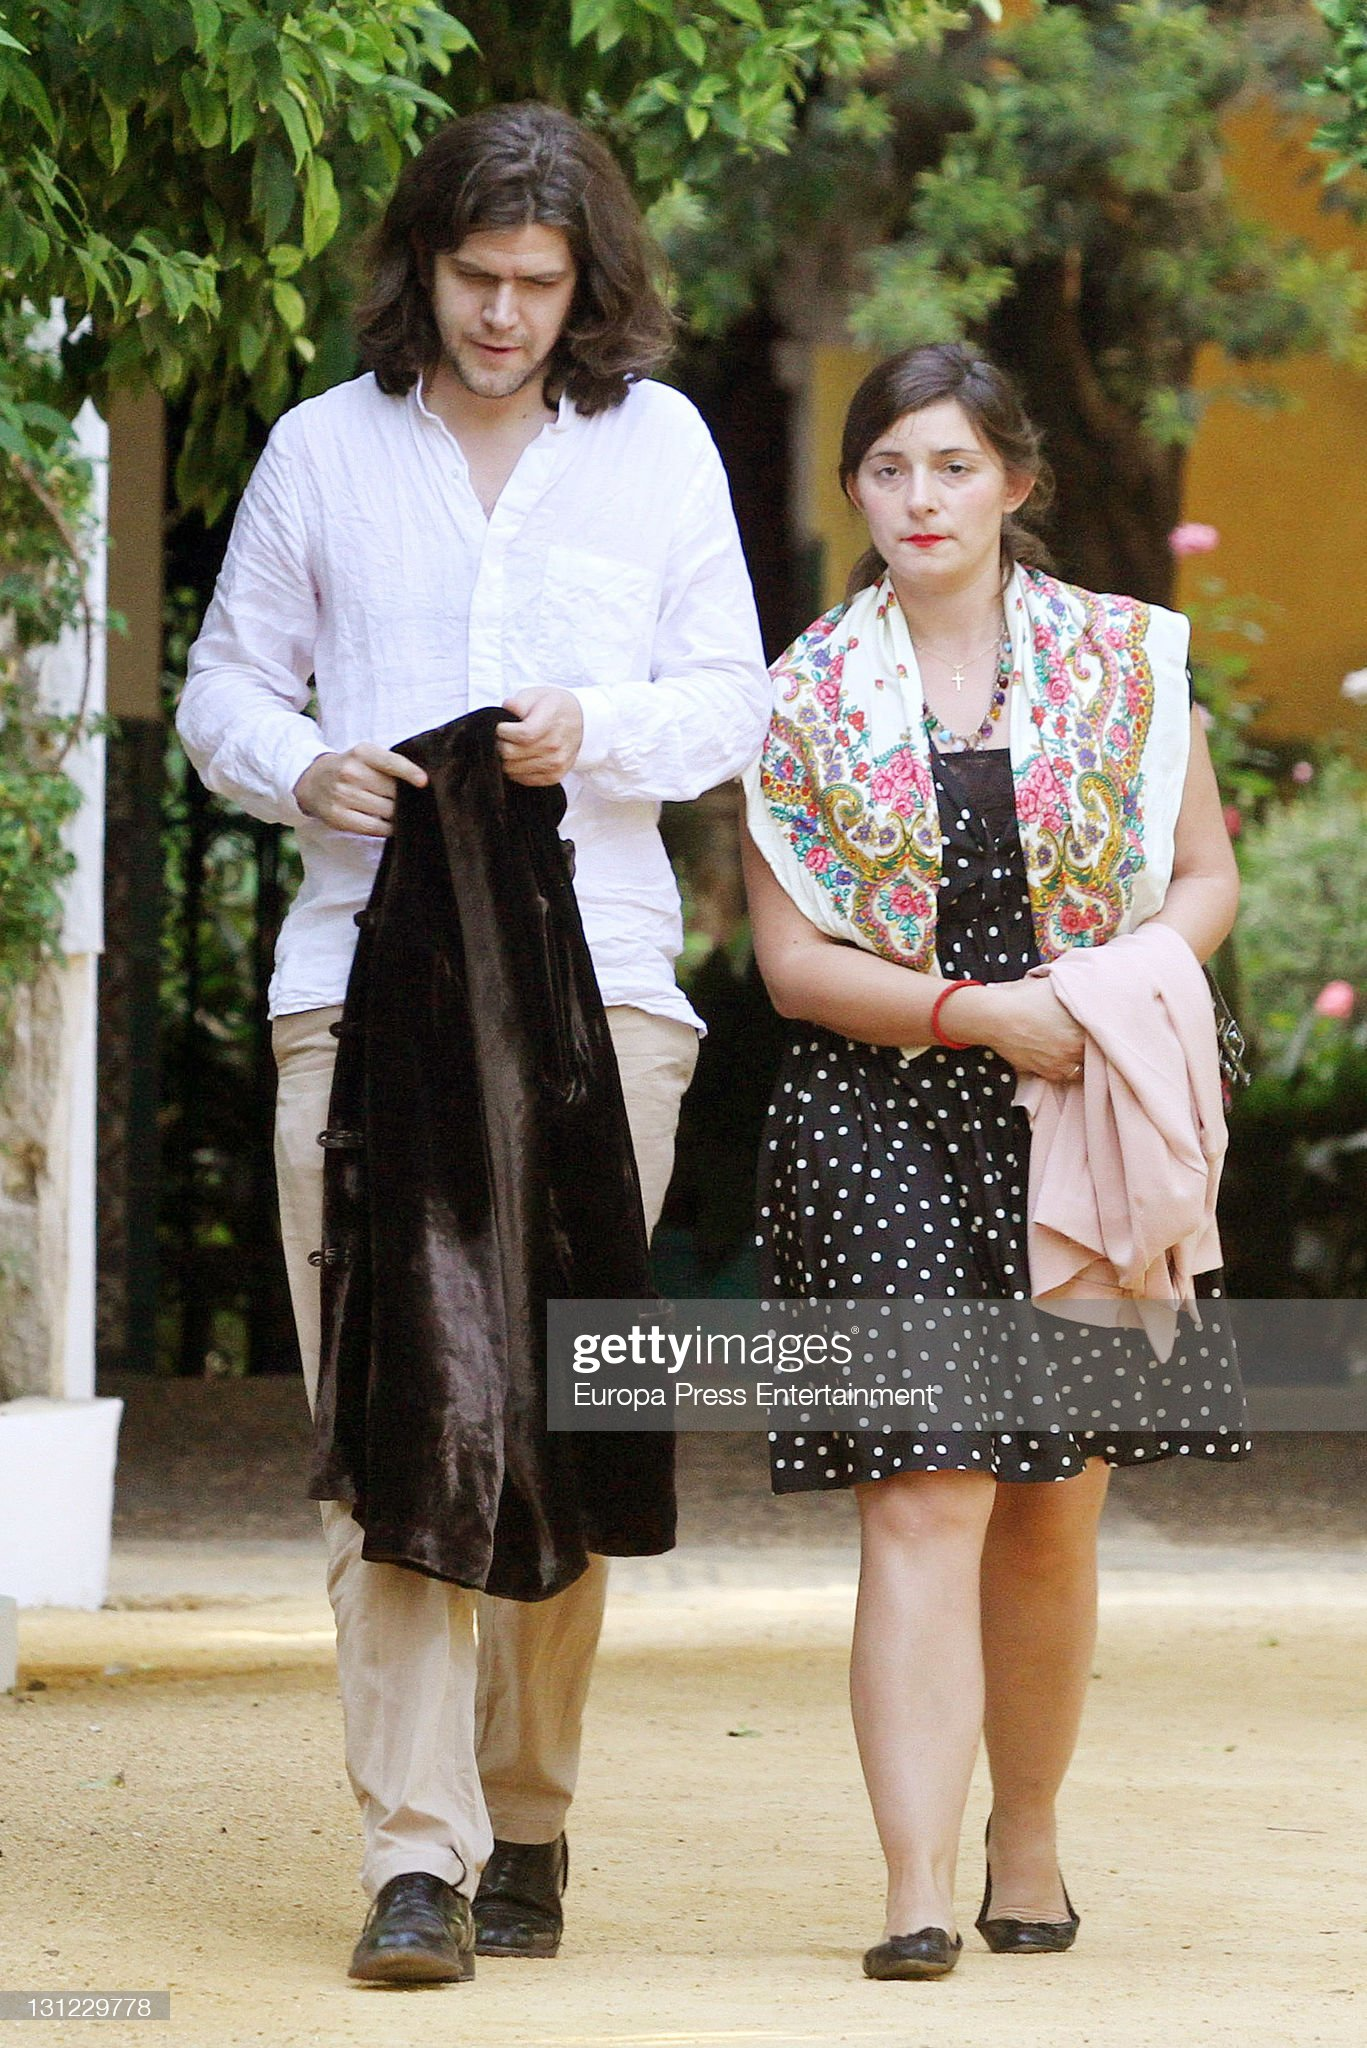 jacobo-fitzjames-and-asela-perez-becerril-are-seen-on-november-3-2011-picture-id131229778